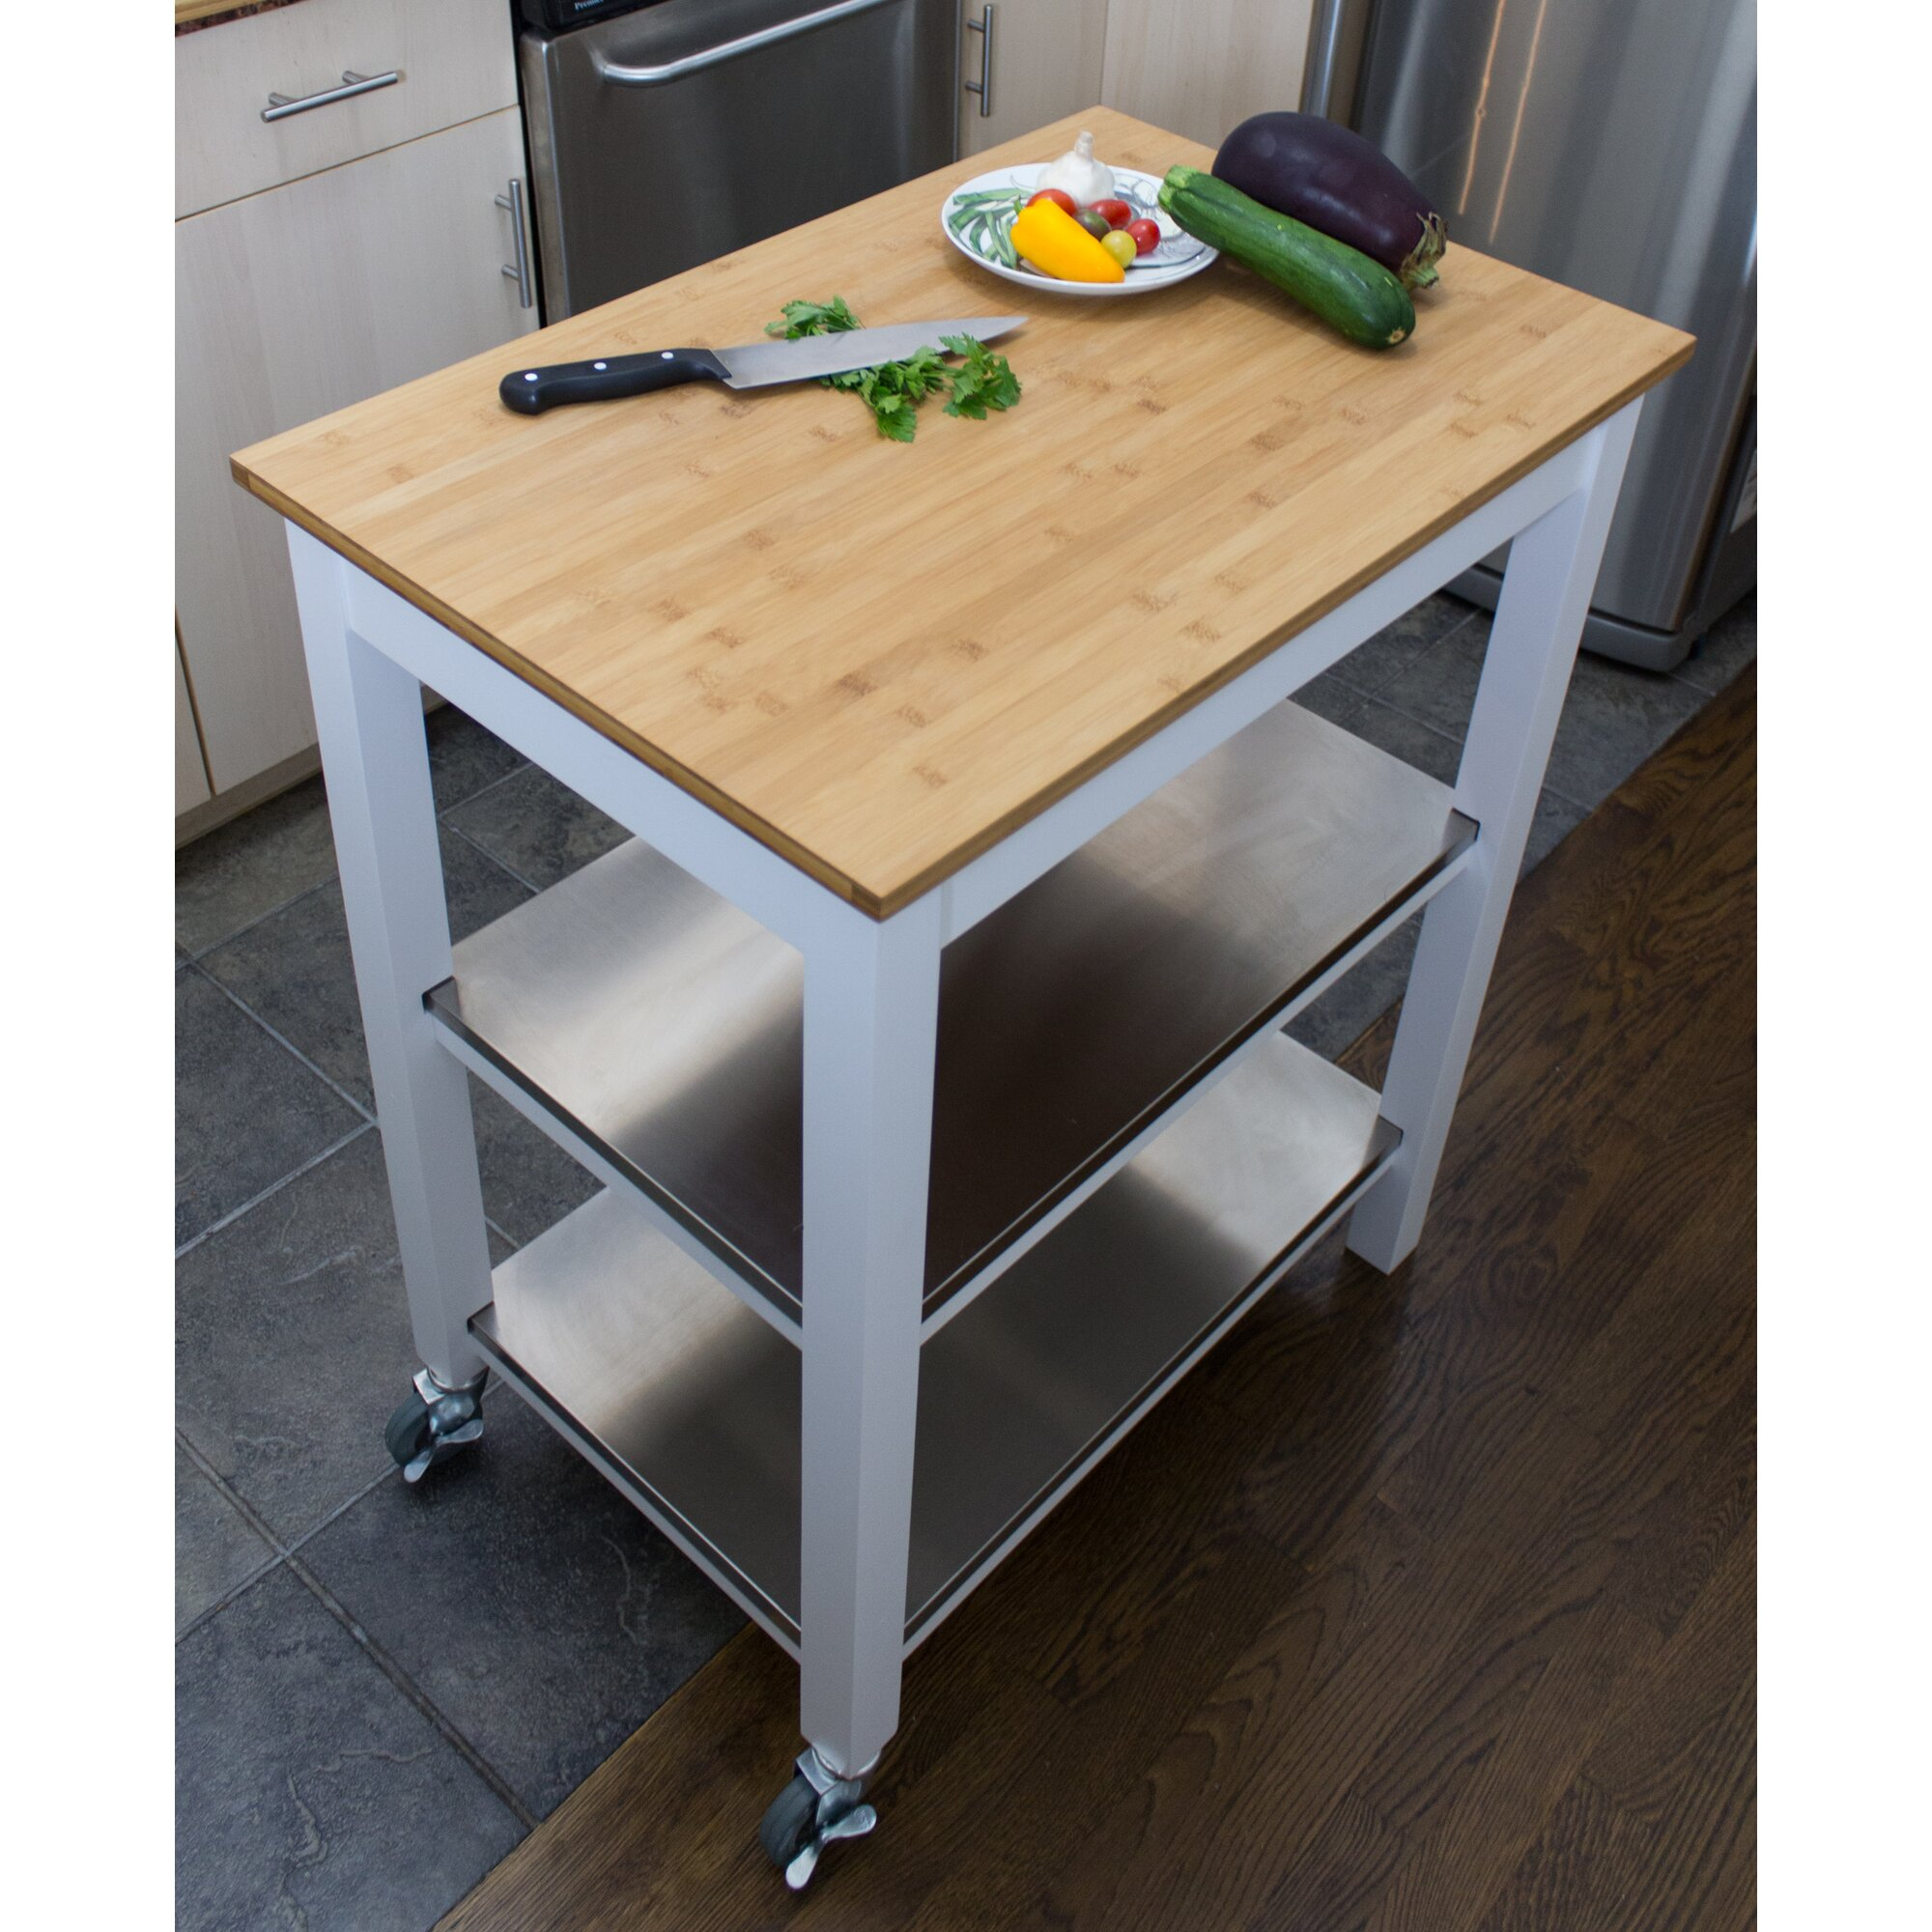 CORNER HOUSEWARES Ultimate Sturdy Oversized Kitchen Island